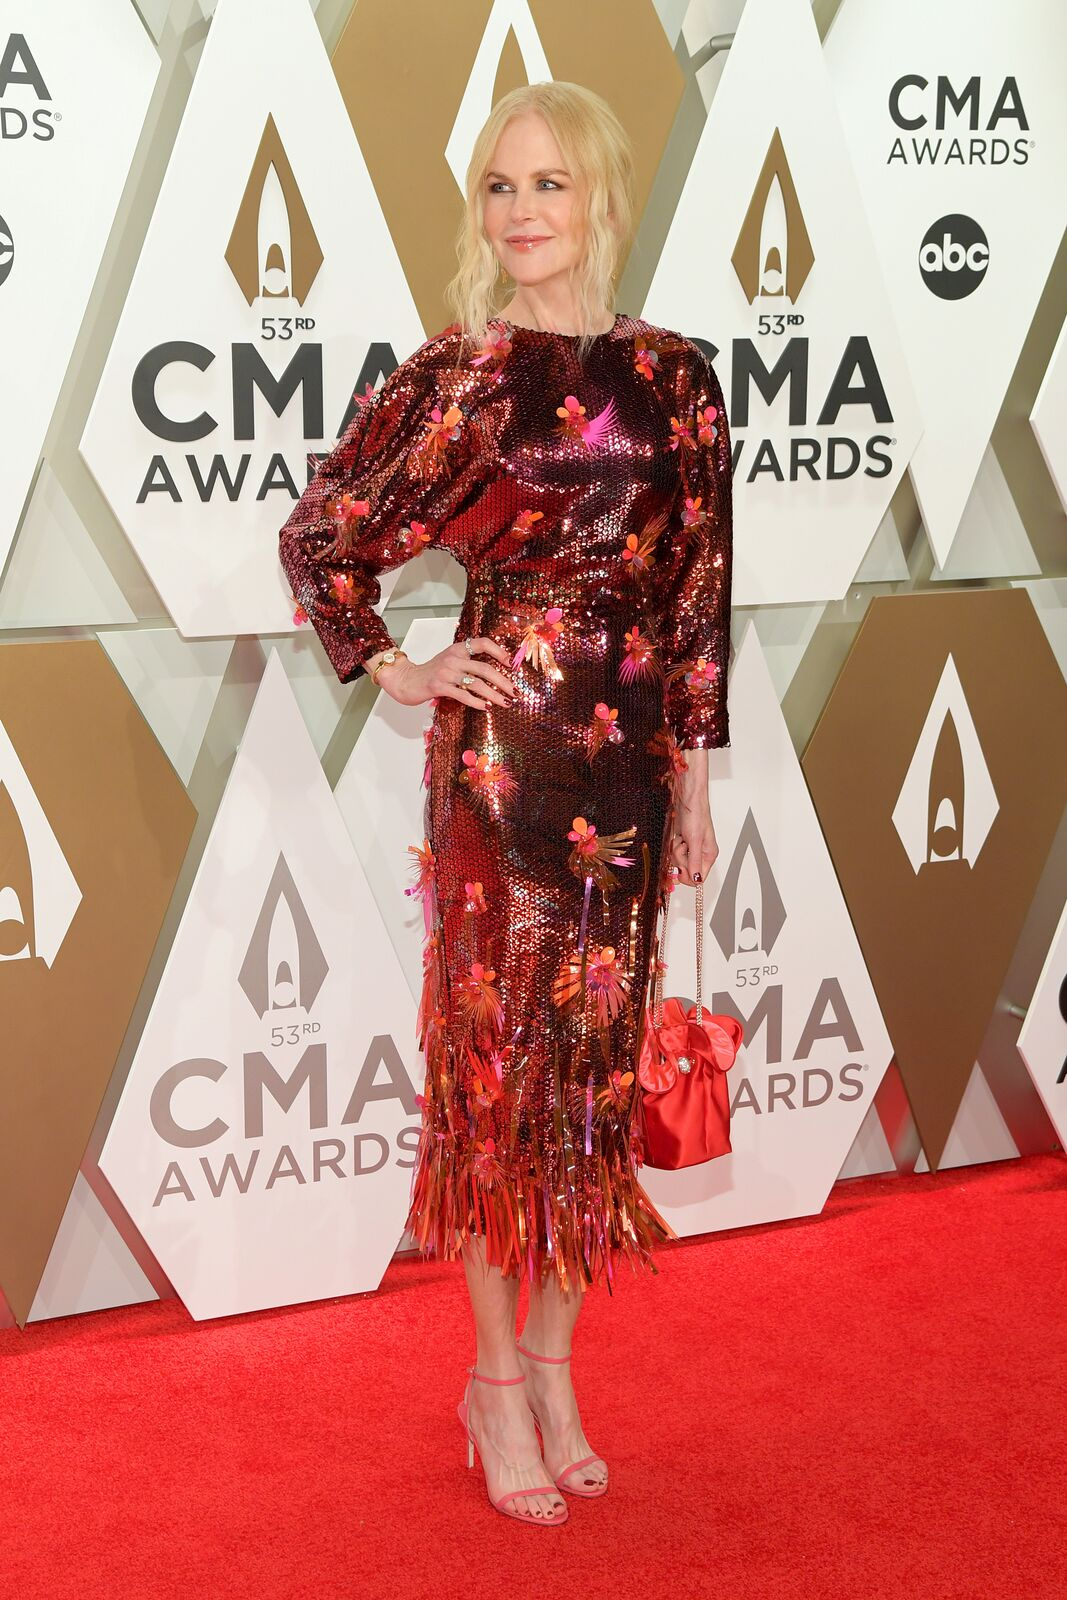 Nicole Kidman at the 53rd annual CMA Awards at Bridgestone Arena on November 13, 2019, in Nashville, Tennessee | Photo: Taylor Hill/Getty Images